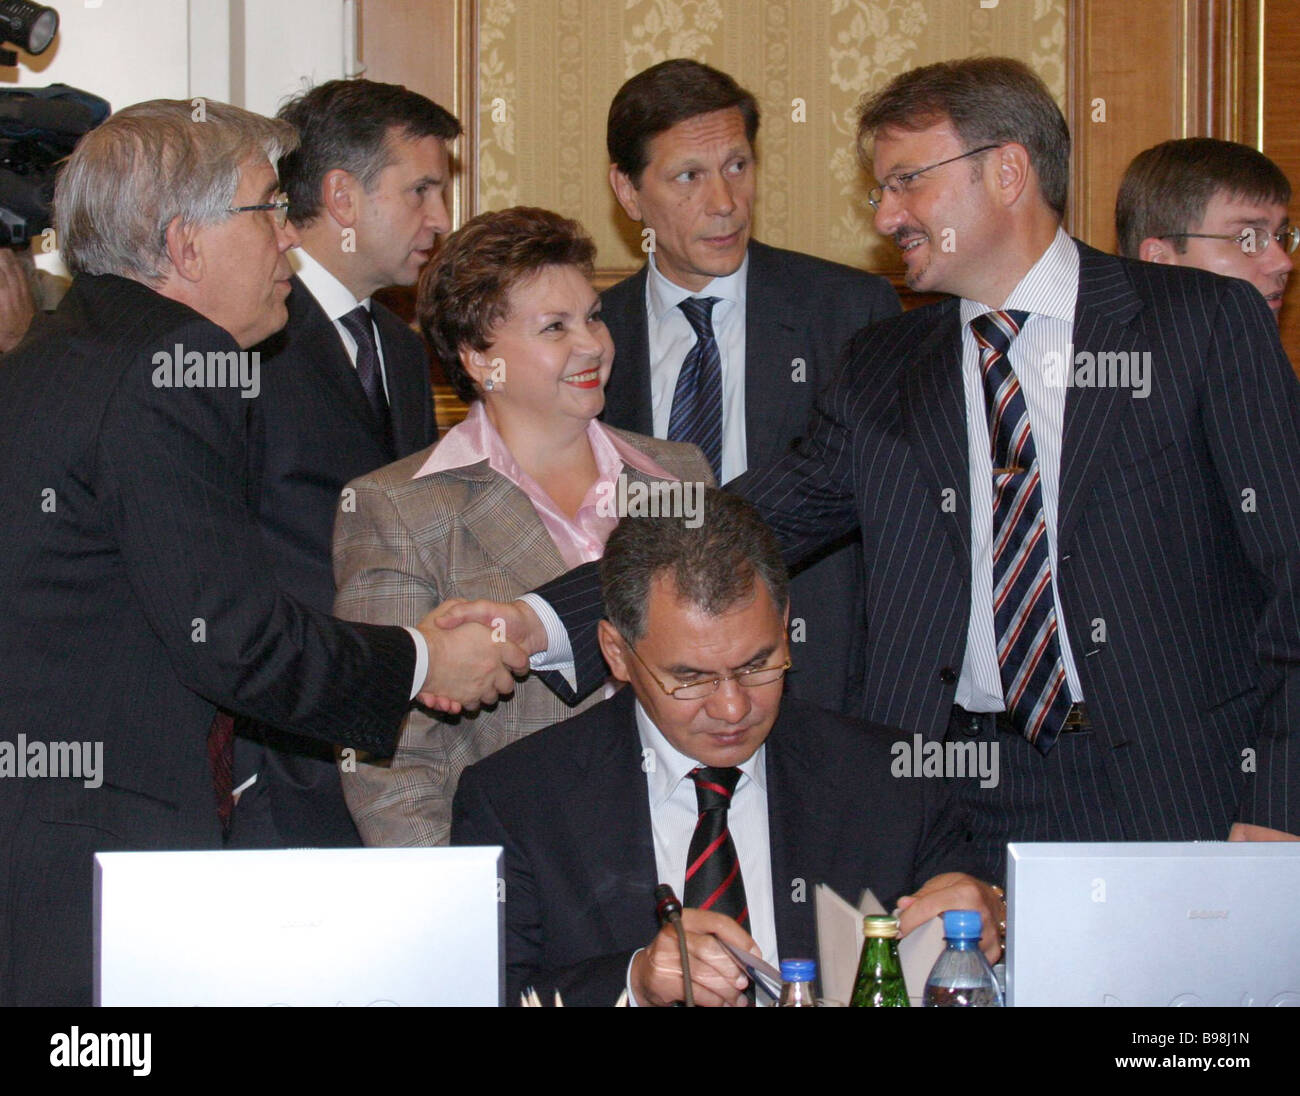 Cabinet members before the session of the Russian Government - Stock Image